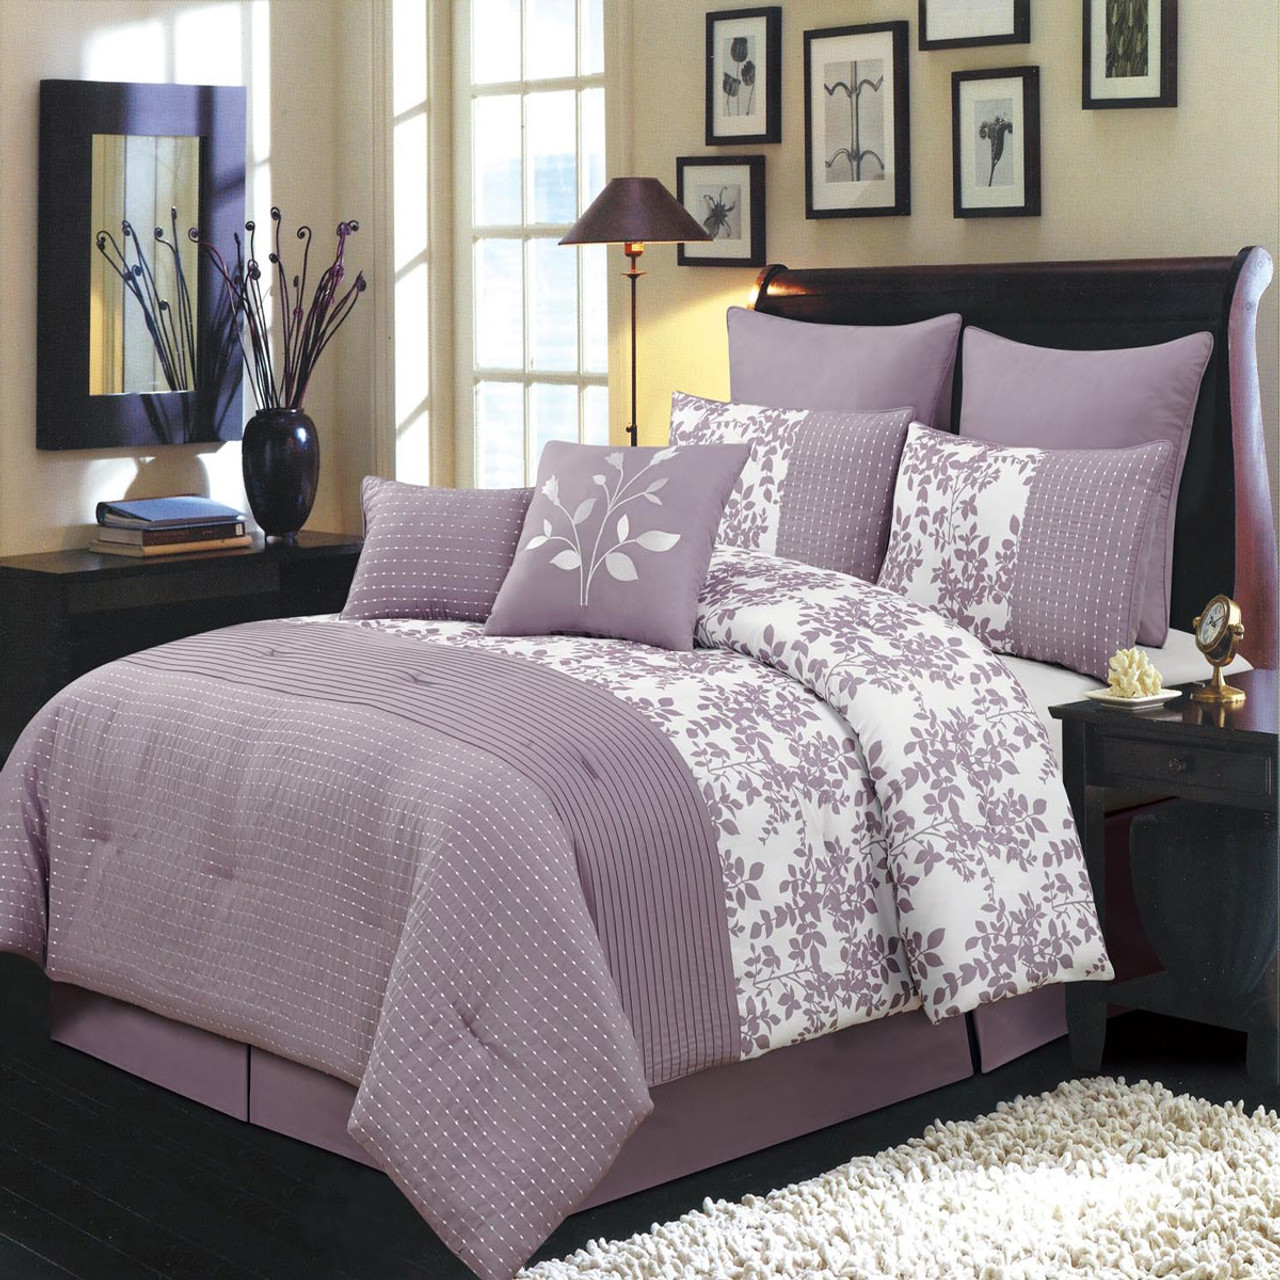 12 Piece Bliss Purple Bed In A Bag Bedding Set  Purple